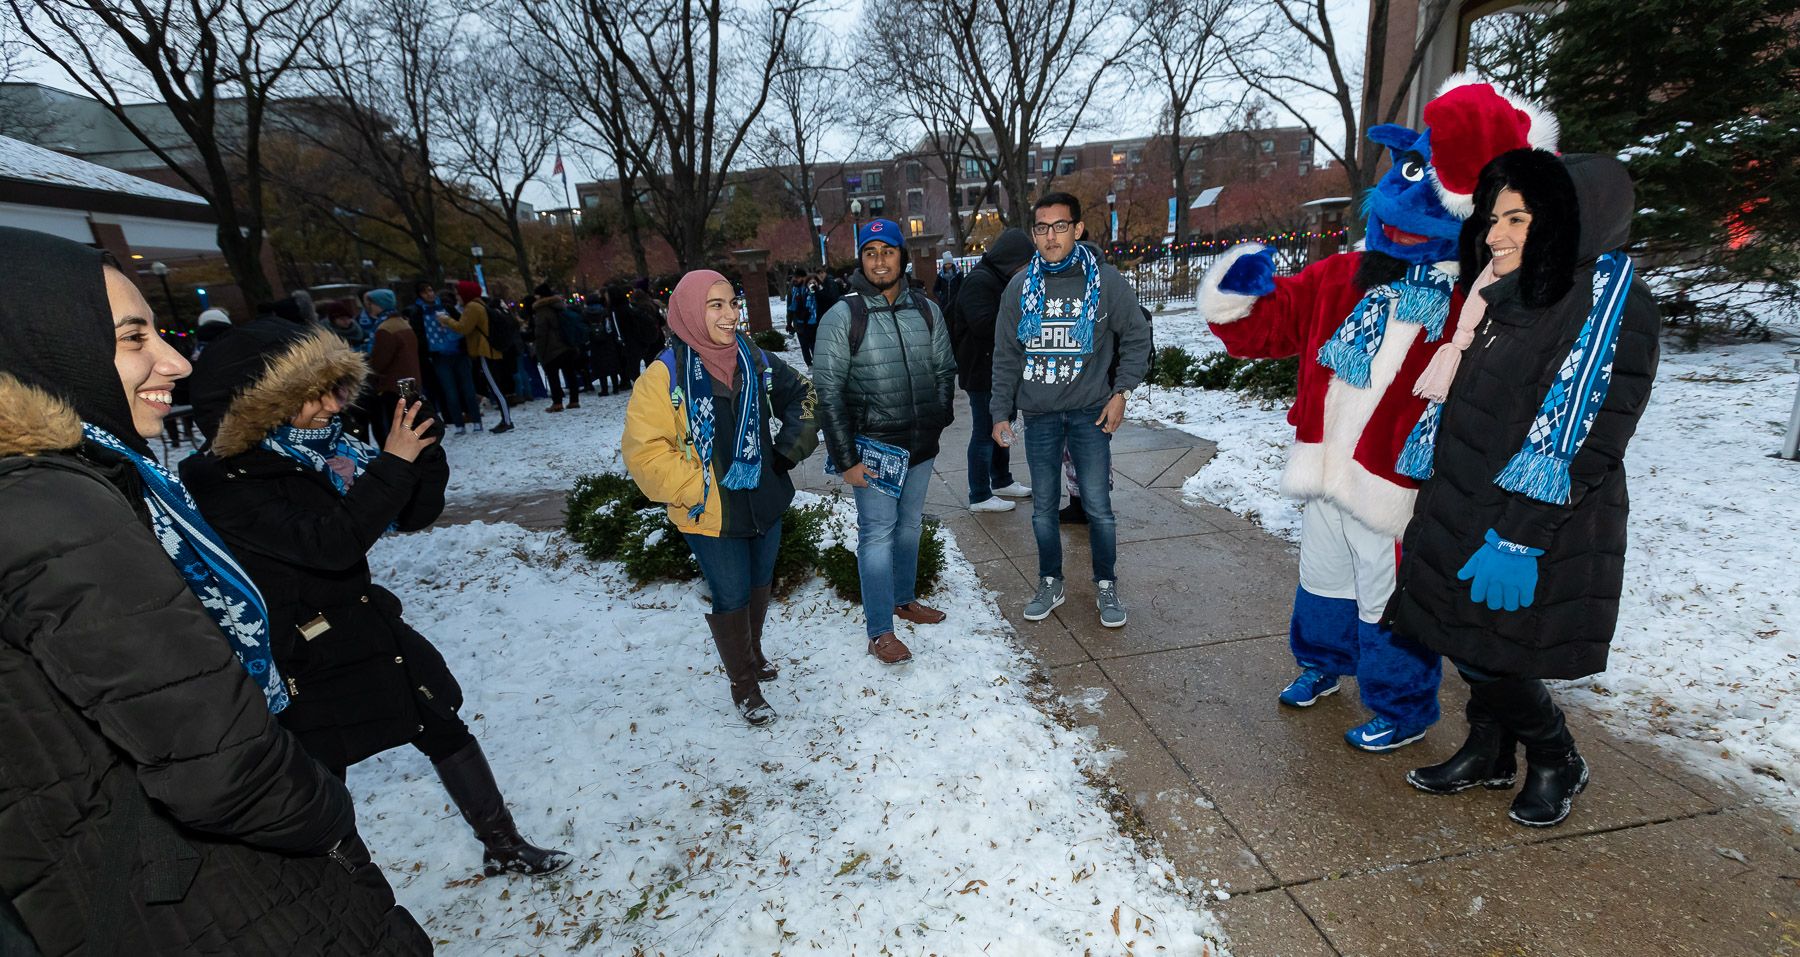 Students grab pictures with DIBS before the Tree Lighting Ceremony. (DePaul University/Jeff Carrion)